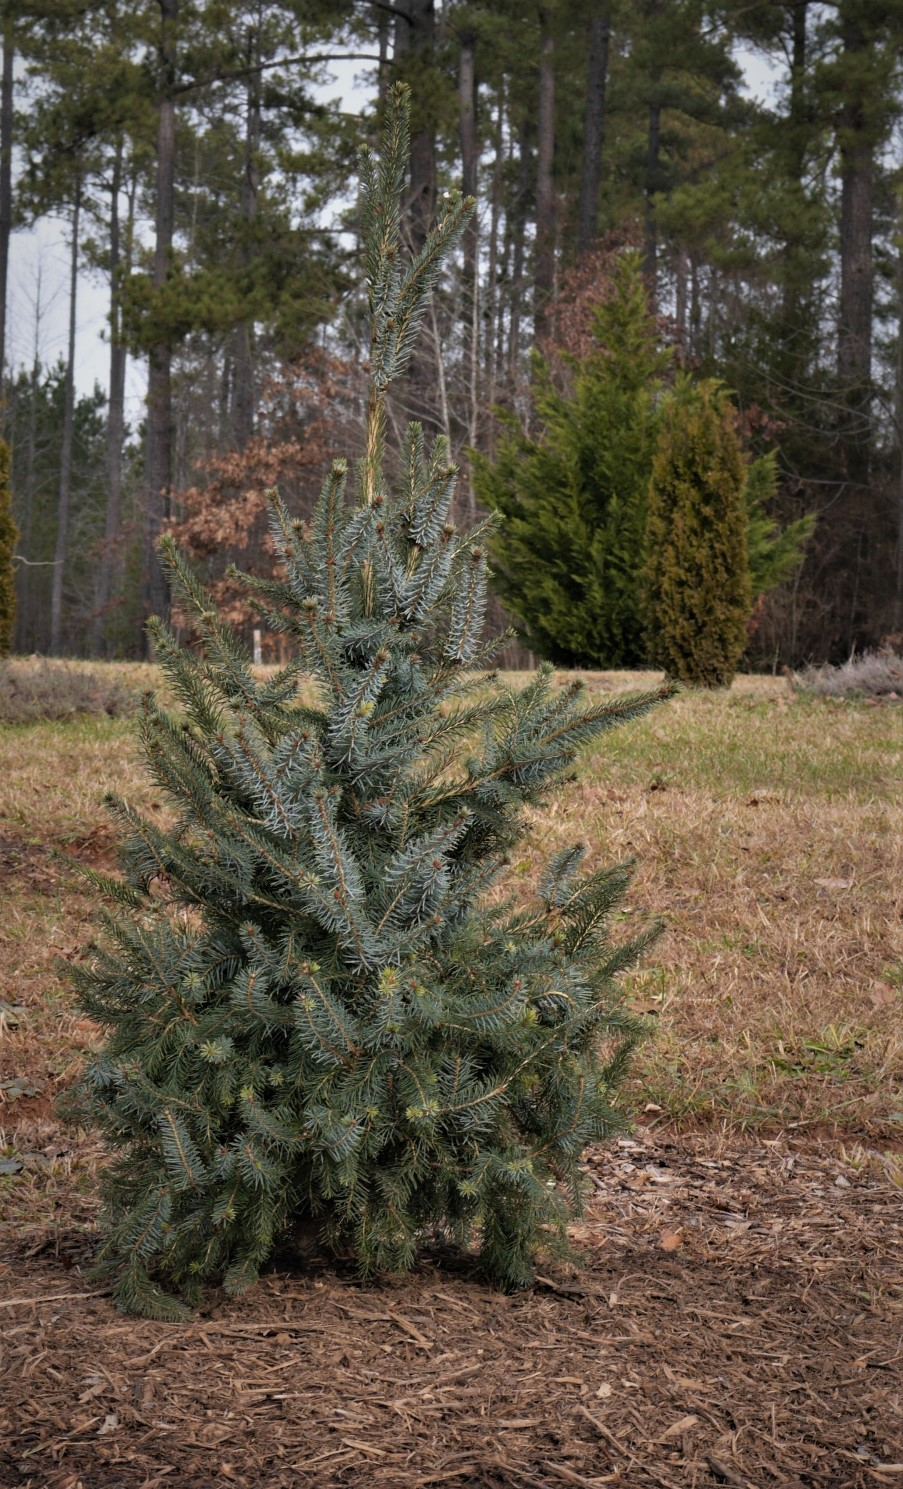 This Picea omorika 'Bruns' has a beautiful, narrow conical shape already, and its aqua foliage has a silvery underside. The dual toned foliage seems to make it shimmer in the sunlight.